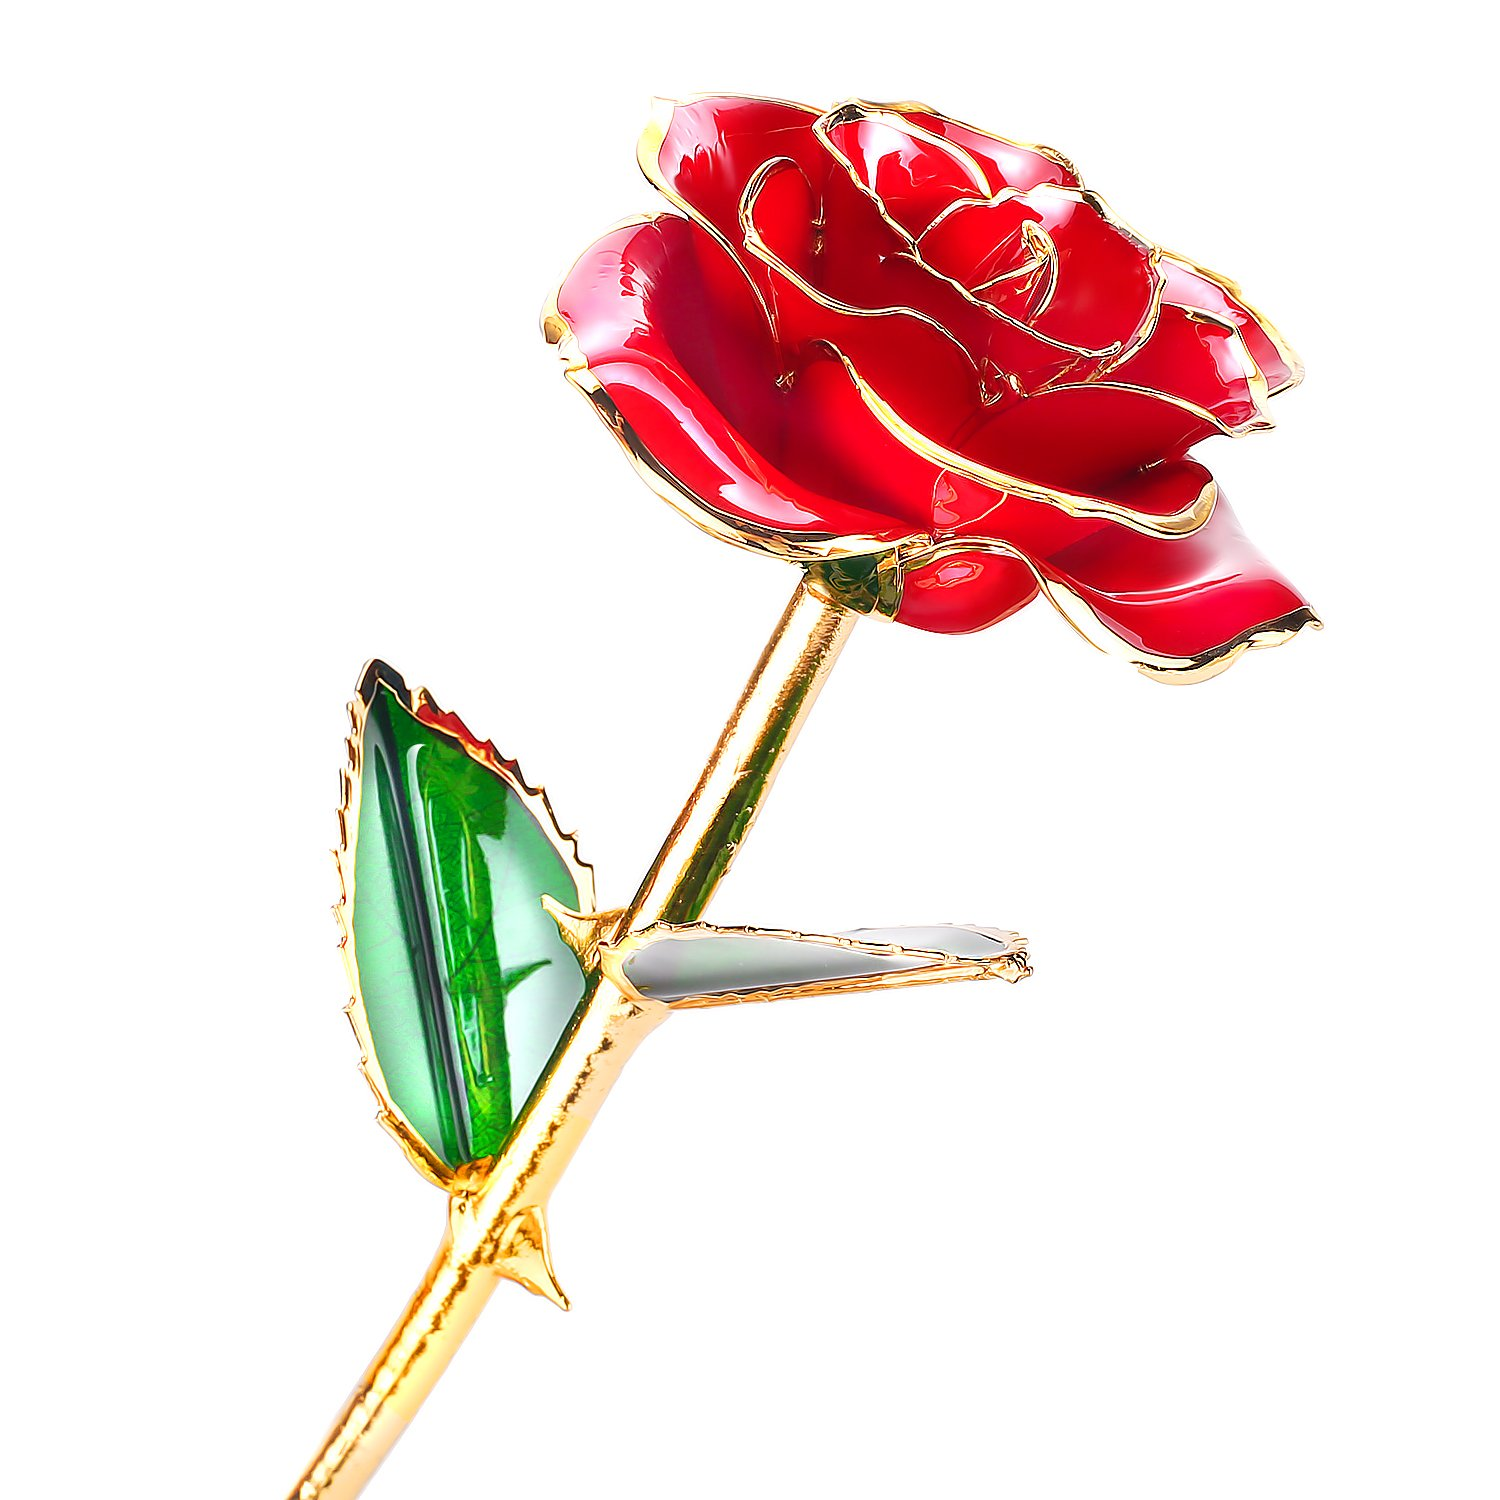 Amazon 24k gold rose flower with long stem rose dipped in gold amazon 24k gold rose flower with long stem rose dipped in gold gift for women girls on birthday valentines day mothers day christmas red home izmirmasajfo